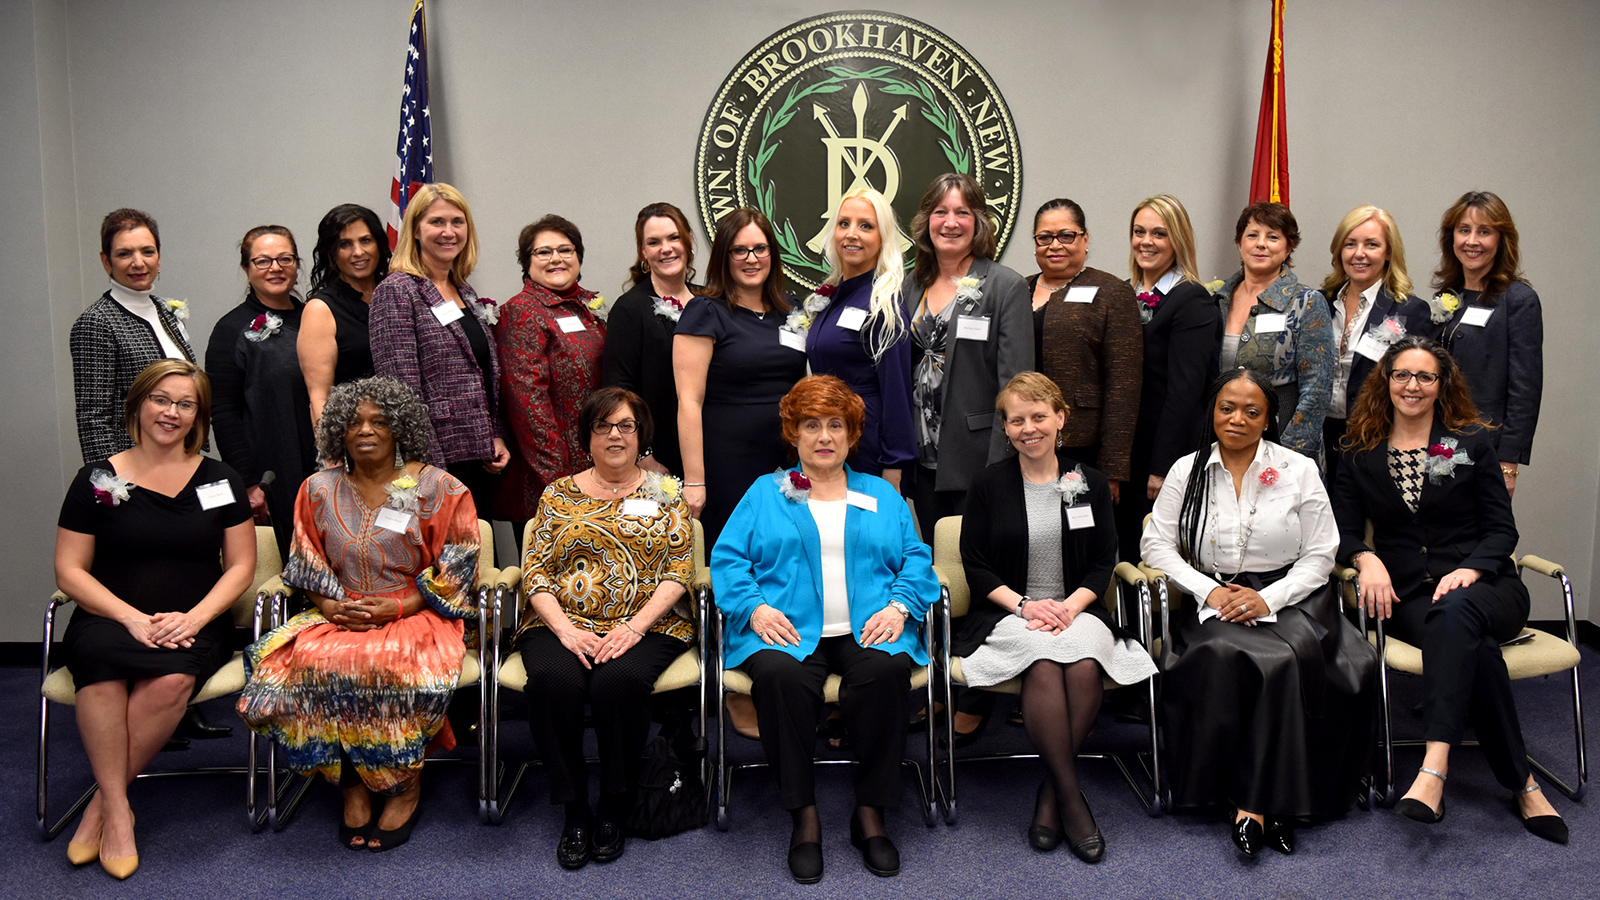 Brookhaven honors recipients of women's recognition award